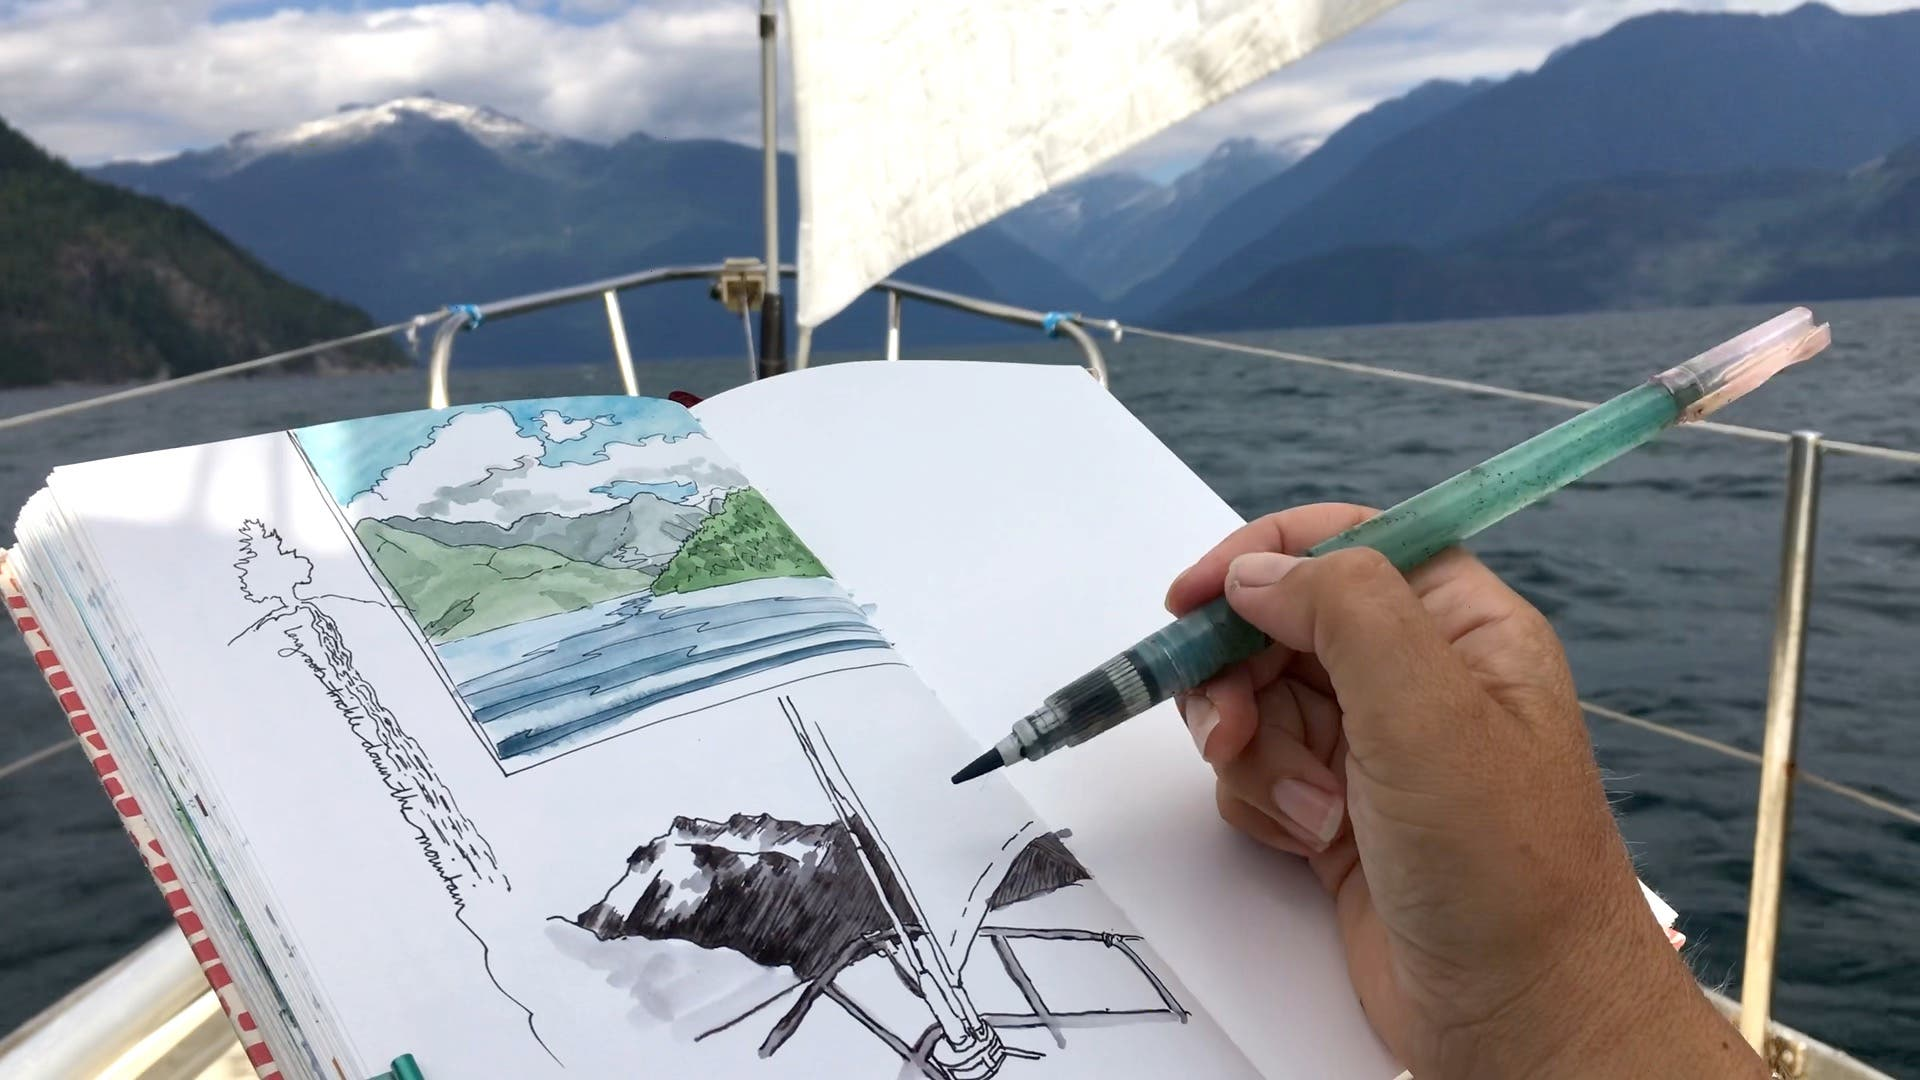 Drawing on the bow of a boat